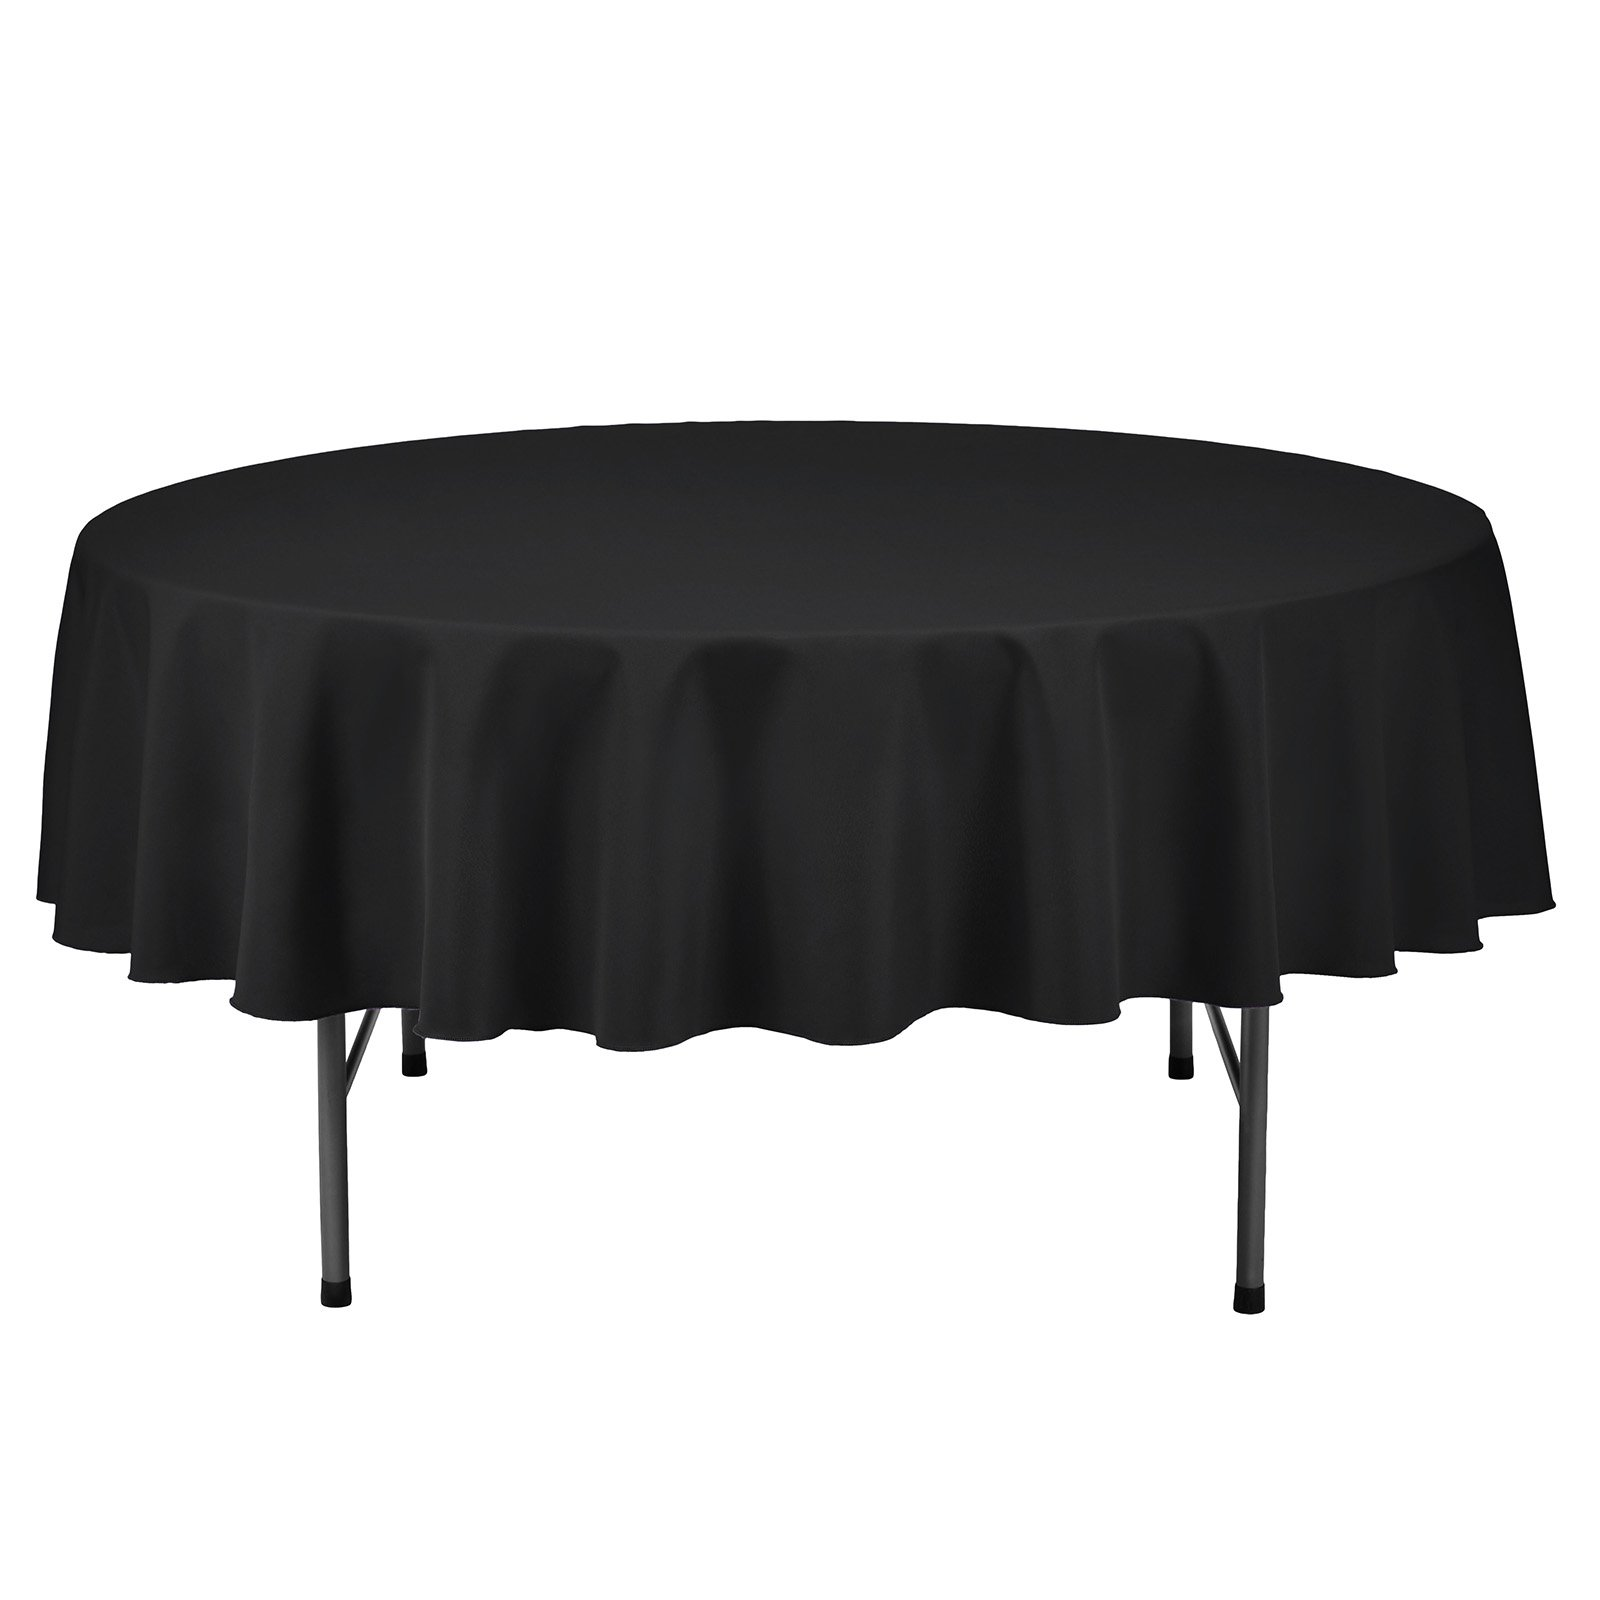 Remedios Round Tablecloth Solid Color Polyester Table Cloth for Bridal Shower Wedding Table – Wrinkle Free Dinner Tablecloth for Restaurant Party Banquet (Black, 70 inch)